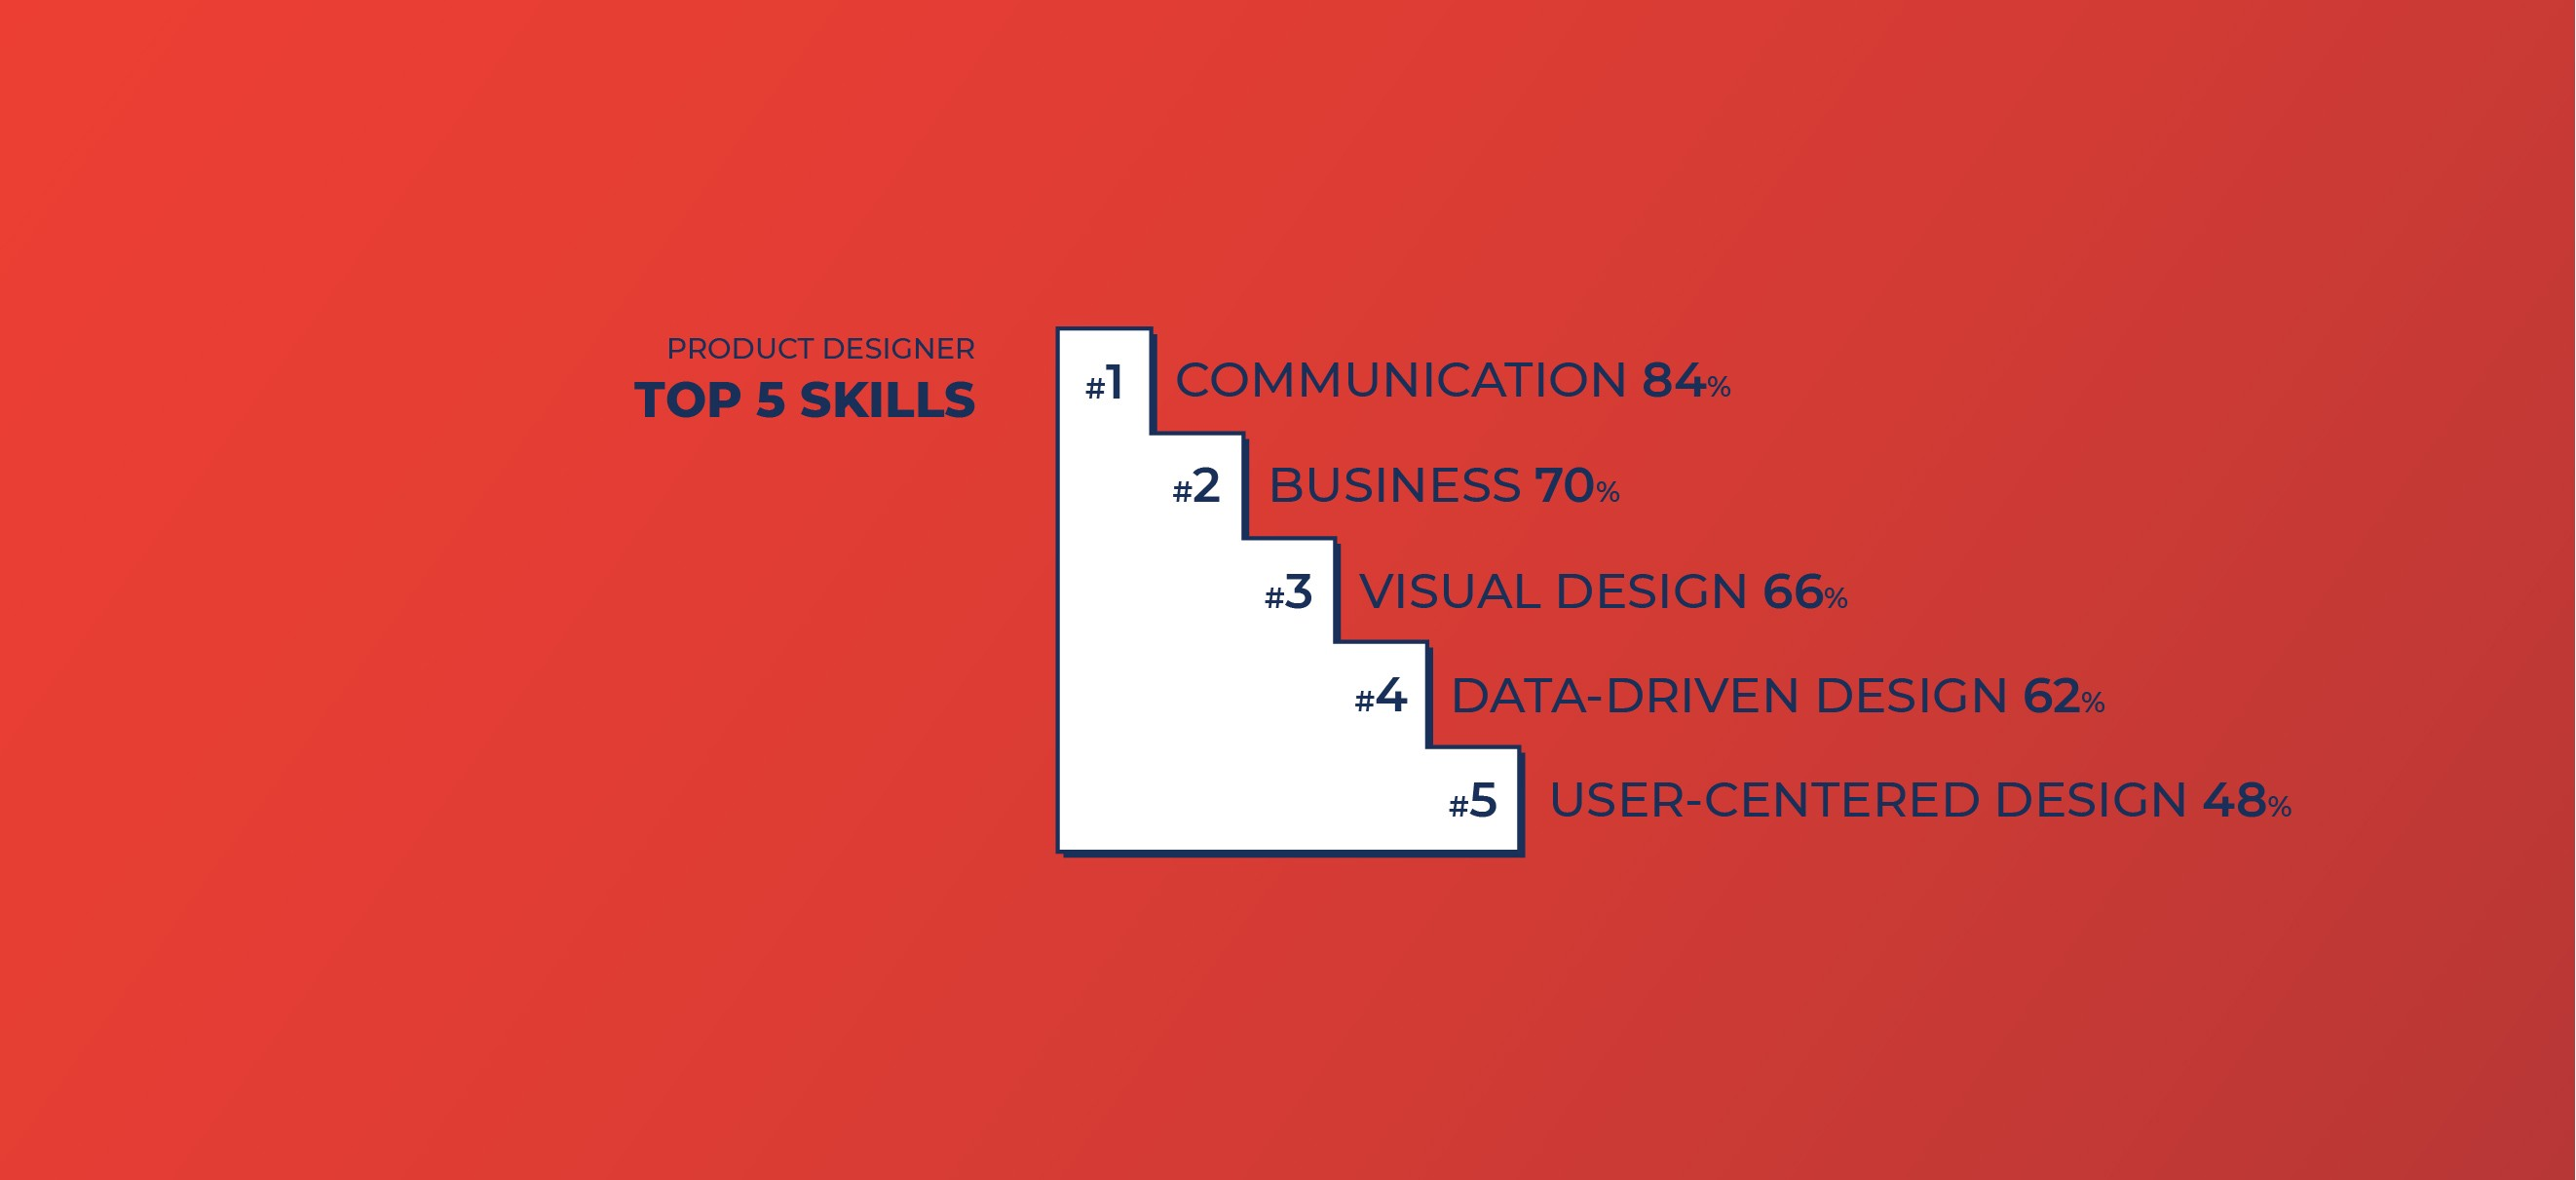 Top 5 Skills for Product Designers: Communication, Business, Visual Design, Data-driven design and User-centered design